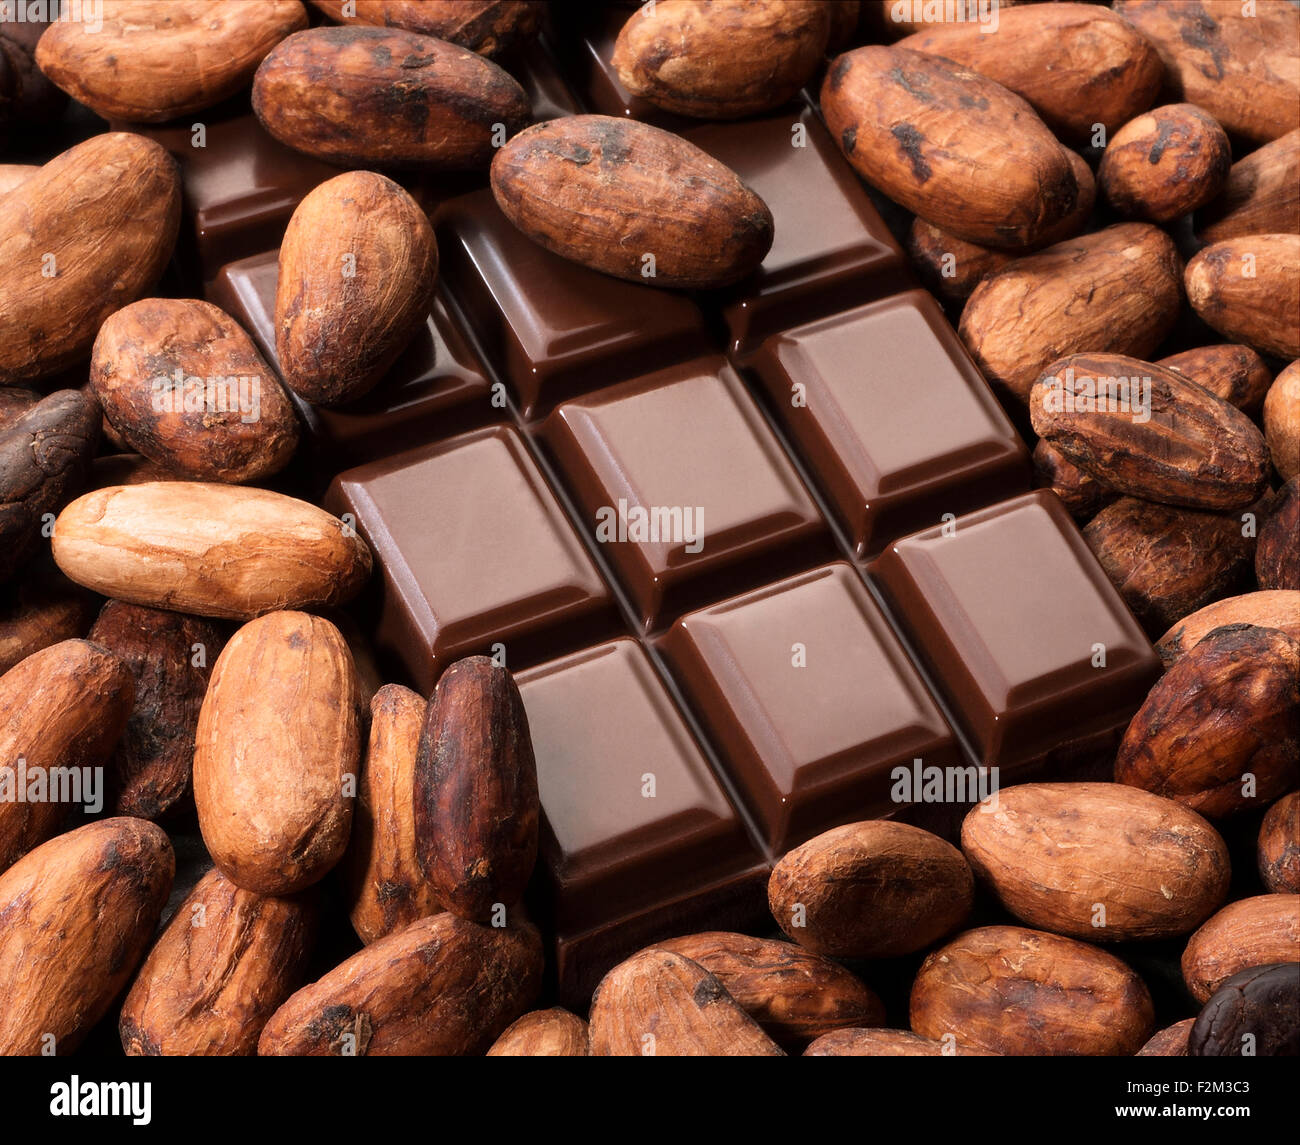 Les fèves de cacao et de chocolat. Photo Stock